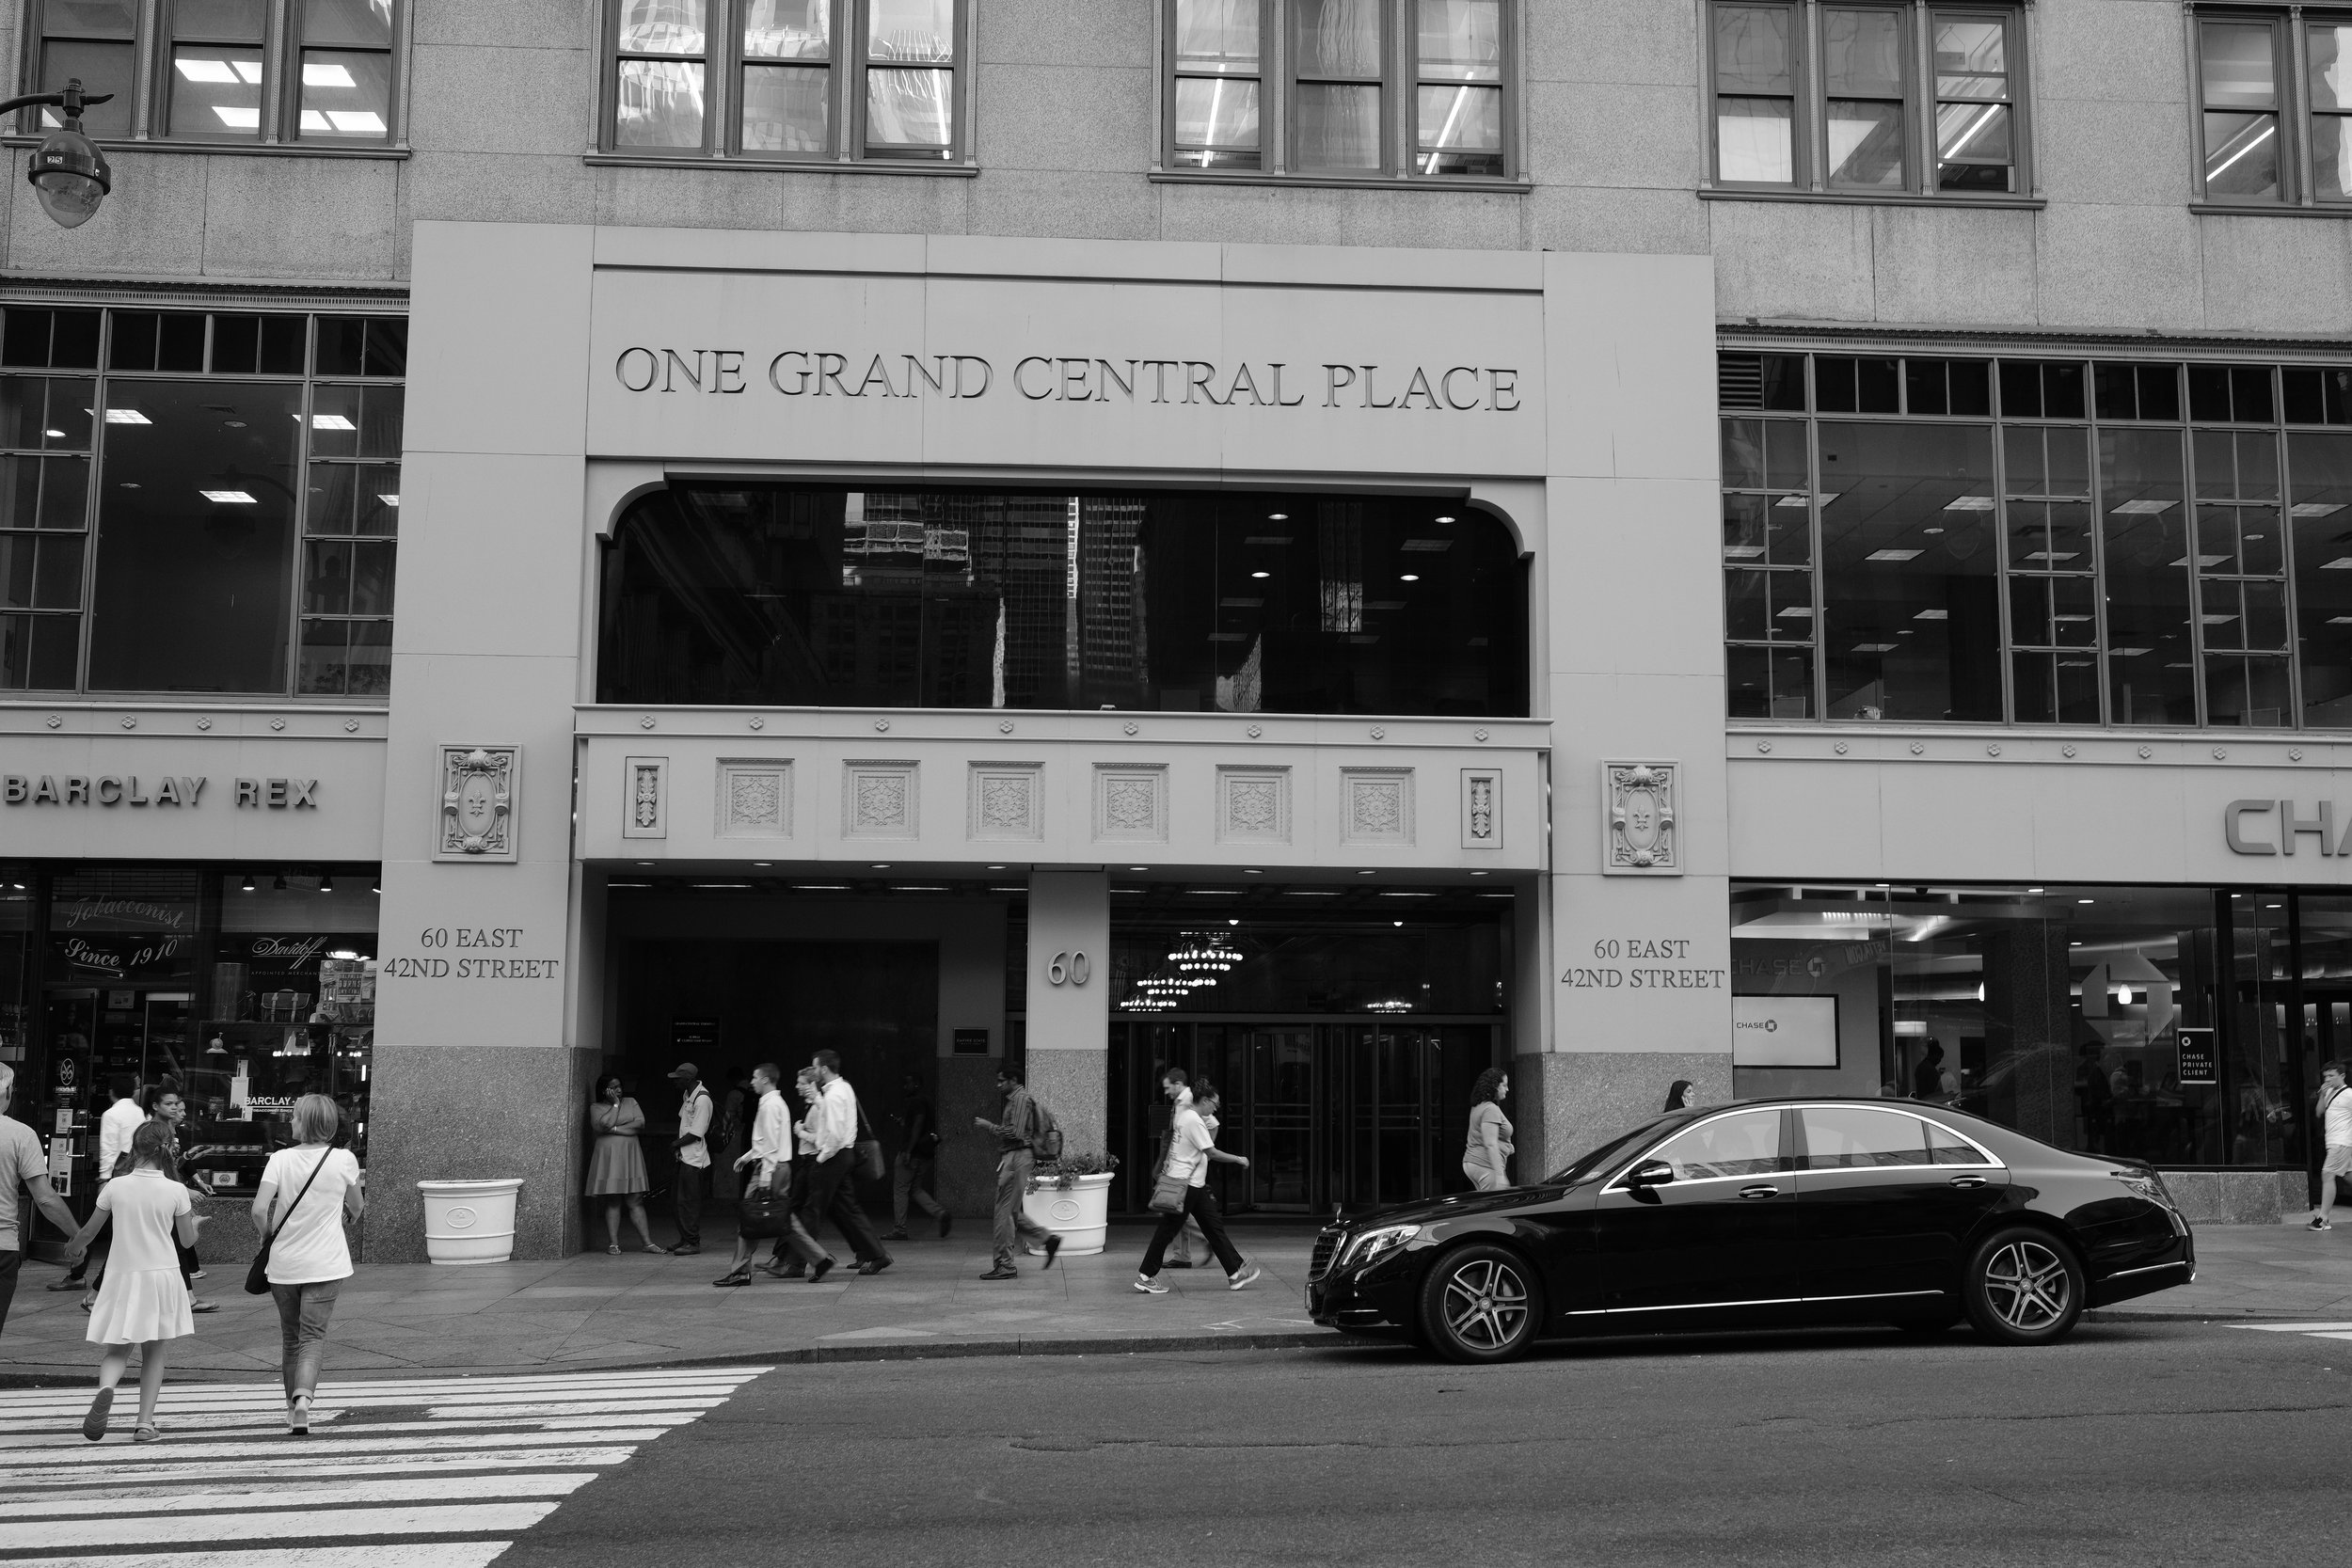 Copy of One Grand Central Place